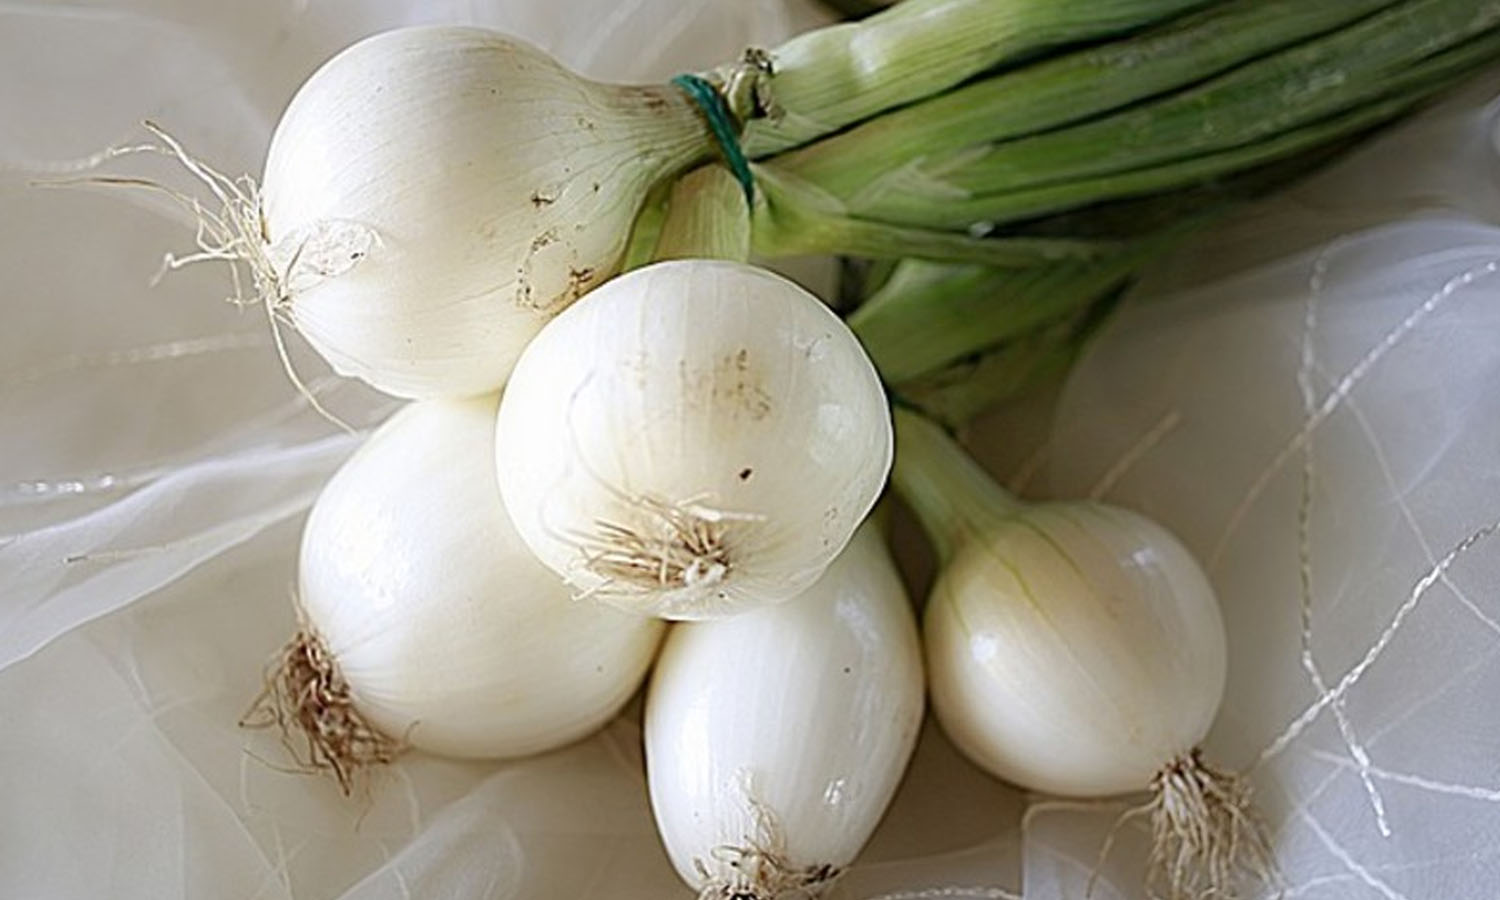 10 Healing Properties of Onion